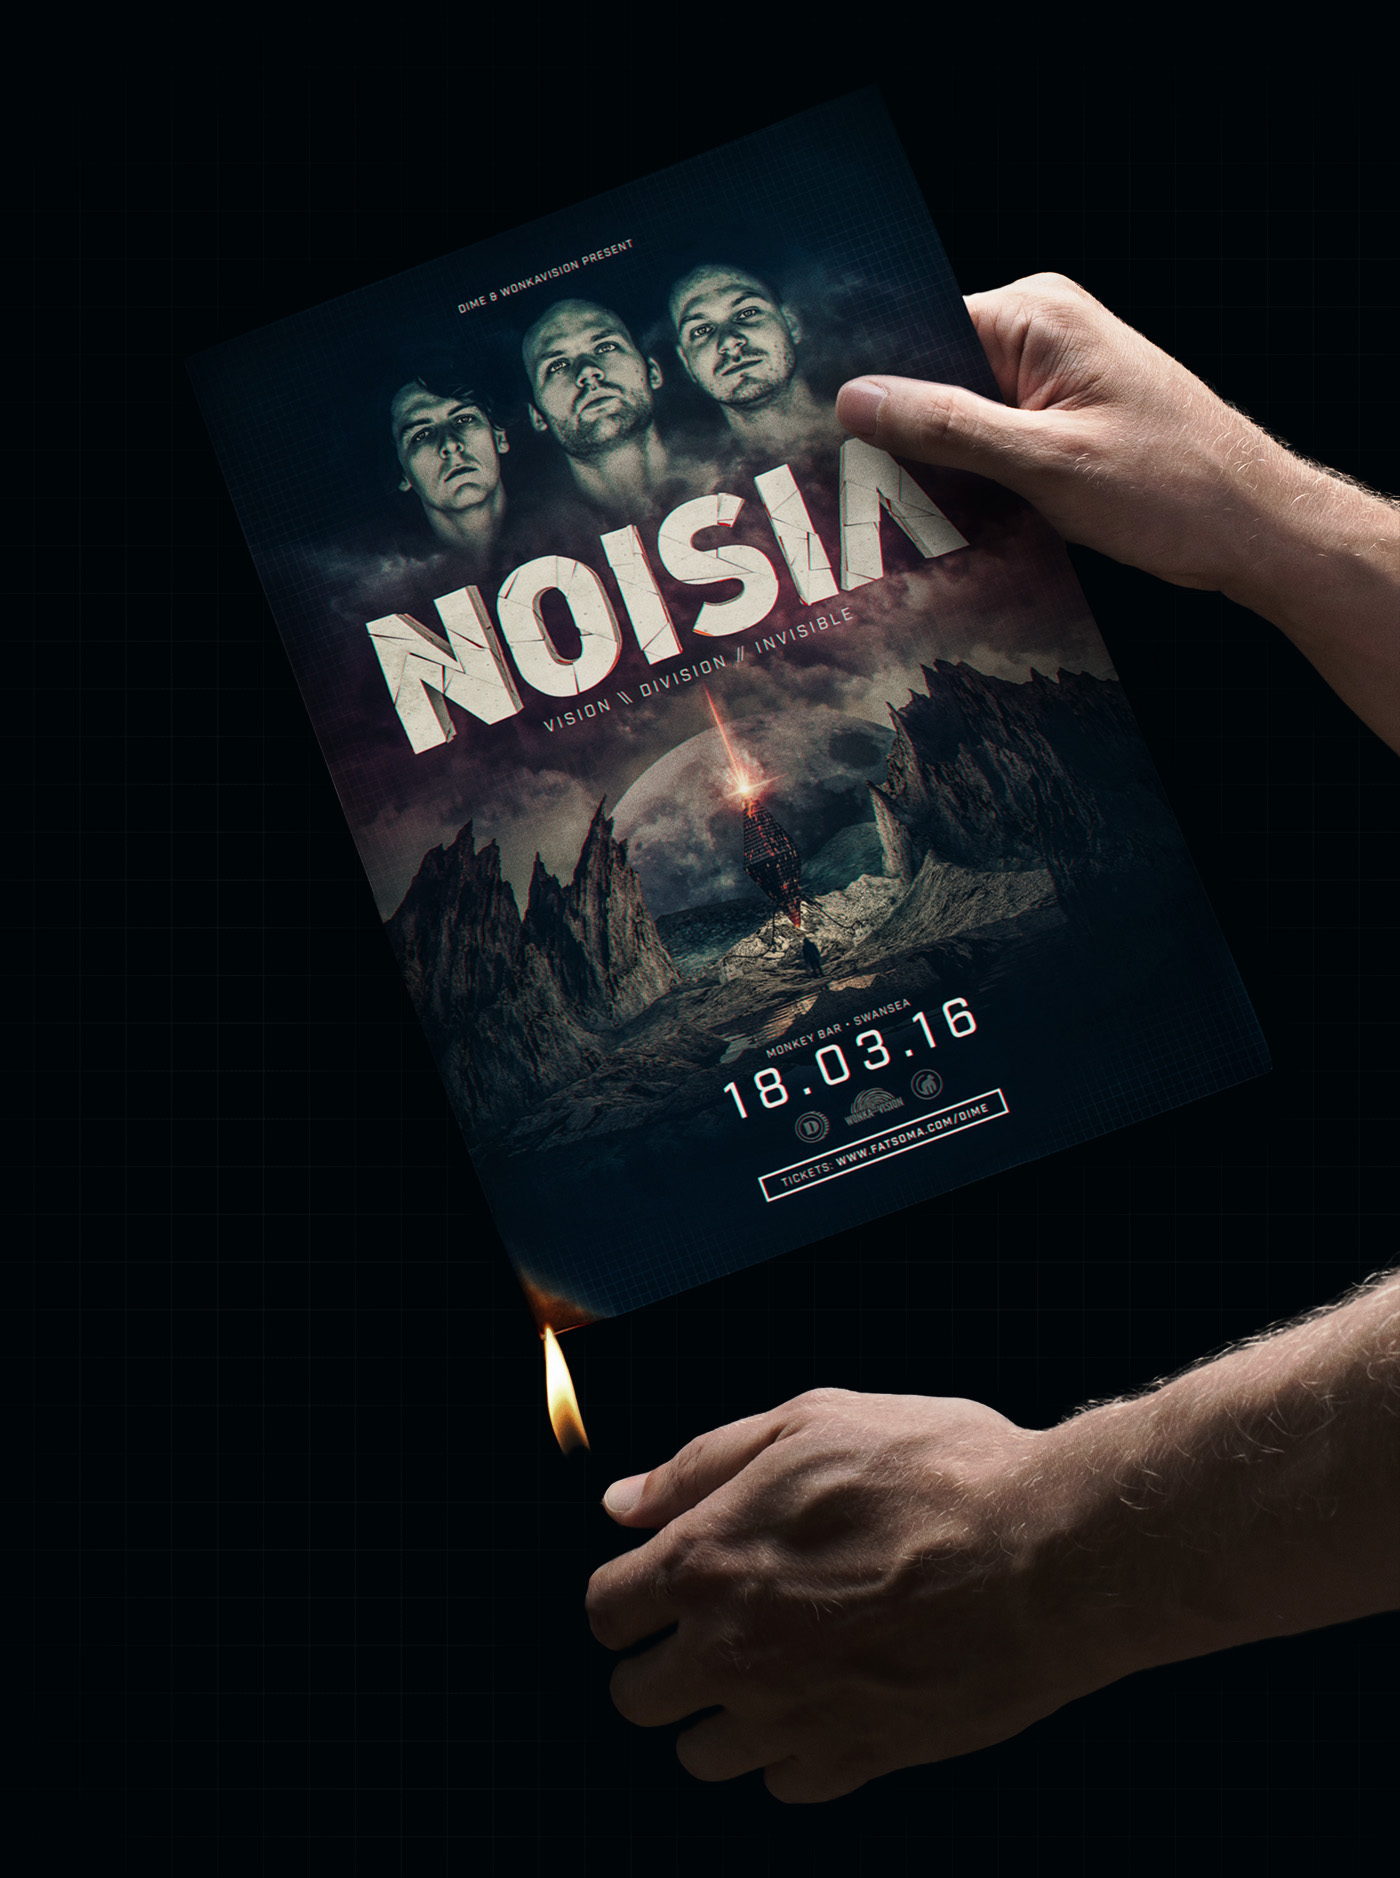 noisia DnB Drum and Bass night Event cinema 4d c4d sci-fi poster alien enviroment crystal free